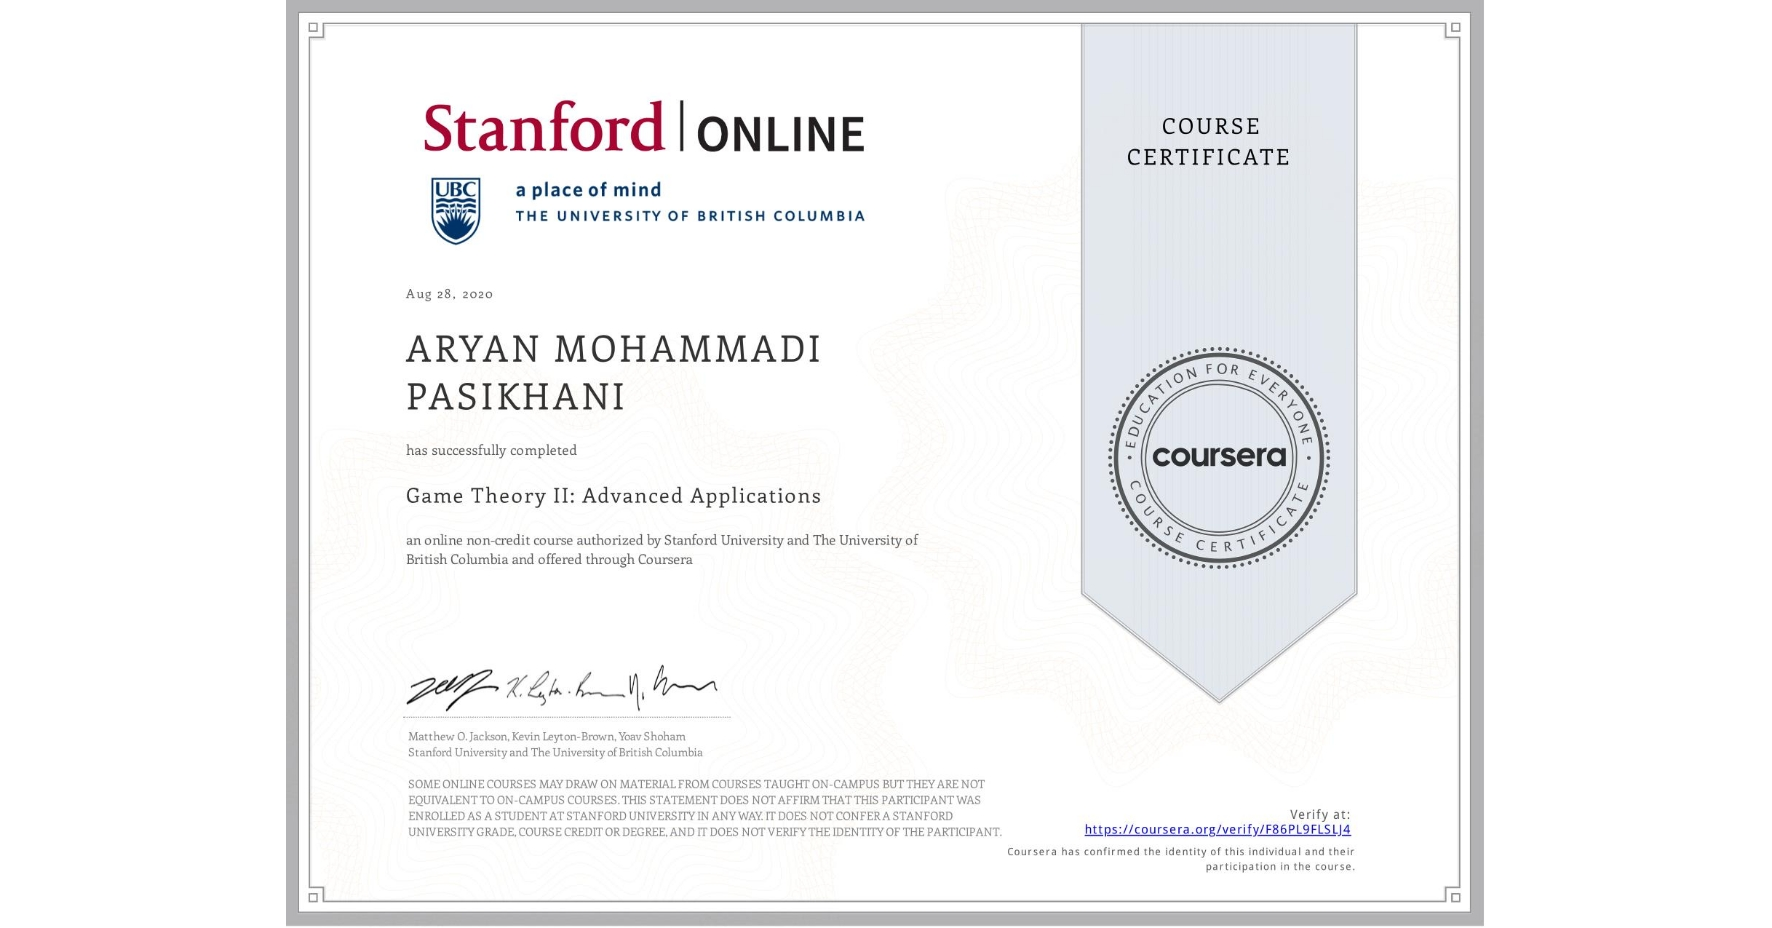 View certificate for ARYAN MOHAMMADI PASIKHANI, Game Theory II: Advanced Applications, an online non-credit course authorized by Stanford University & The University of British Columbia and offered through Coursera